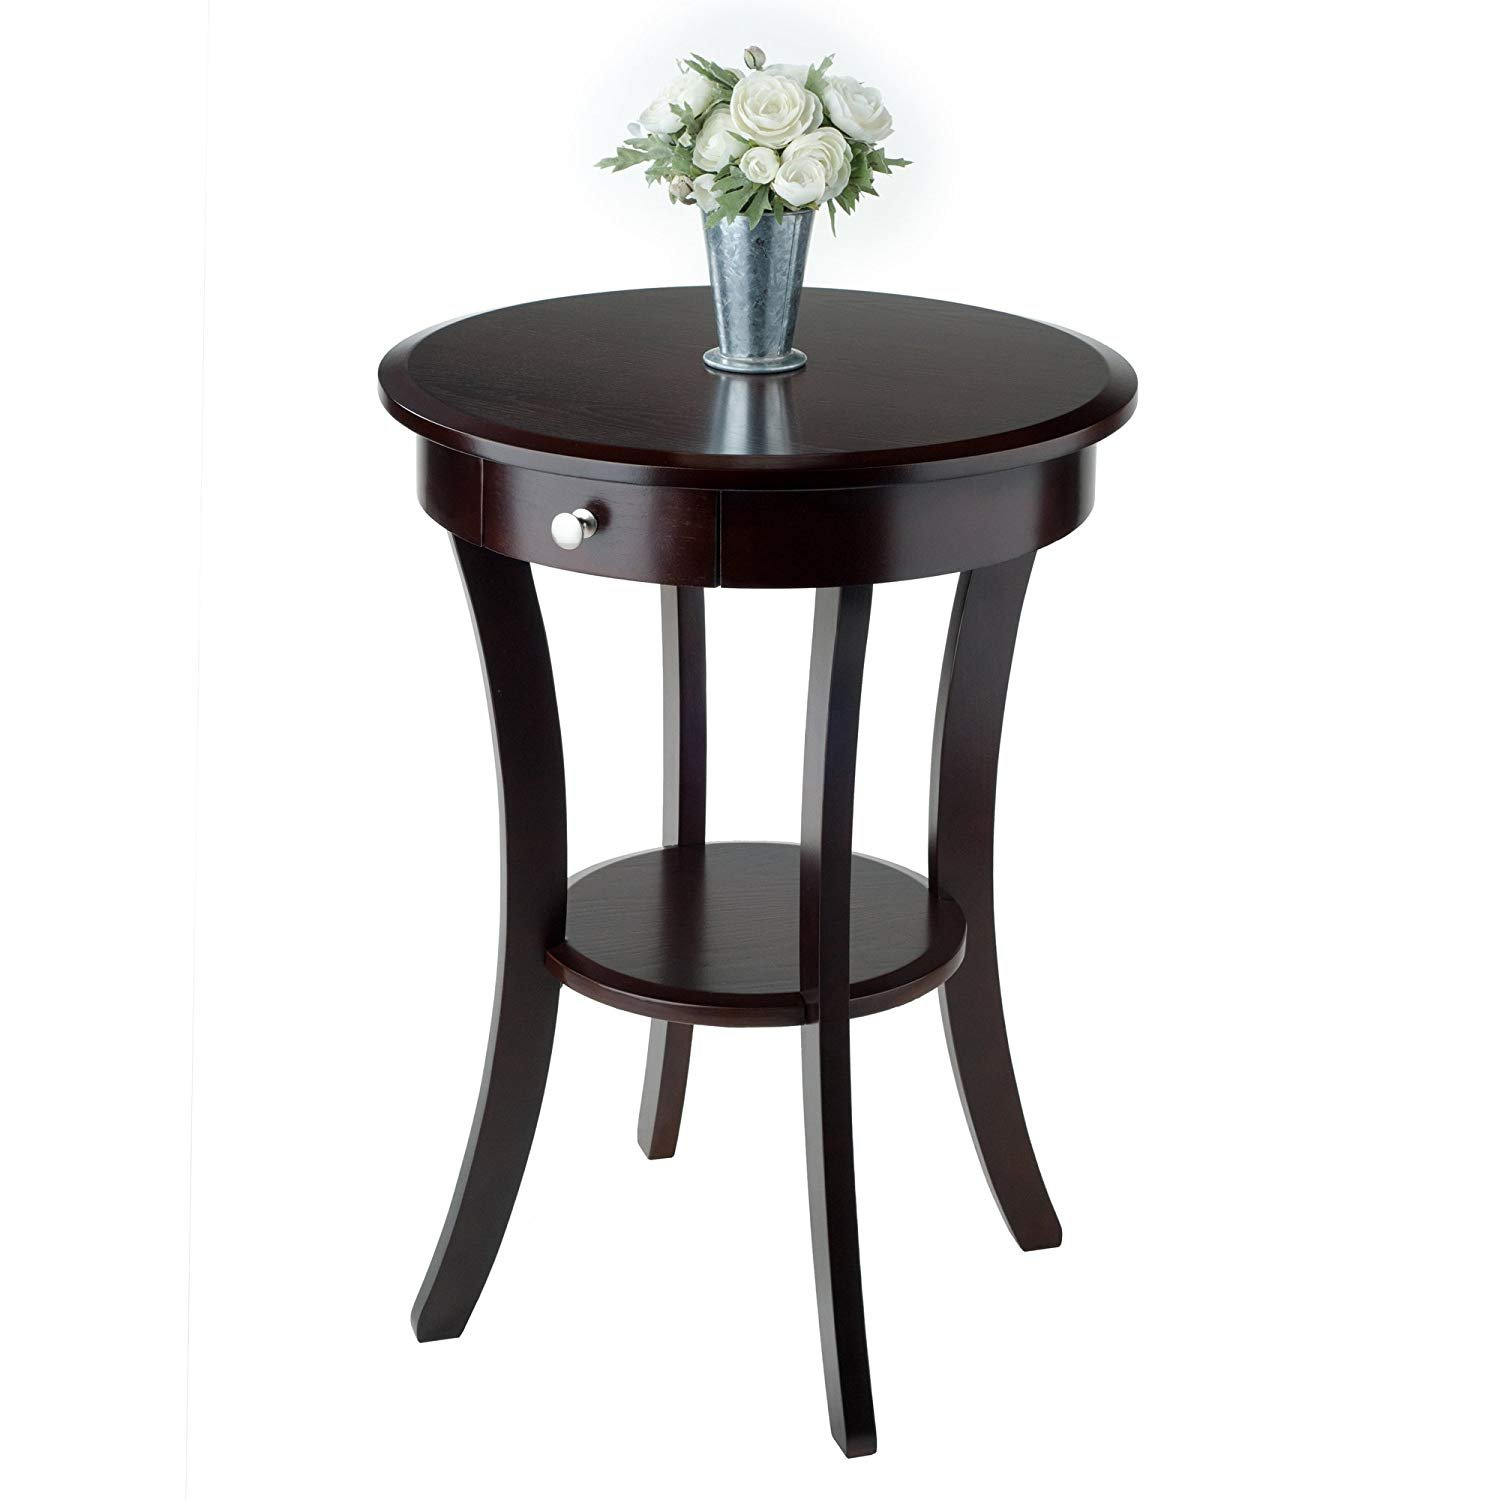 small accent table for places round cappuccino winsome wood cassie with glass top finish premium night stand drawer kitchen dining tables living room console cabinet dog kennel